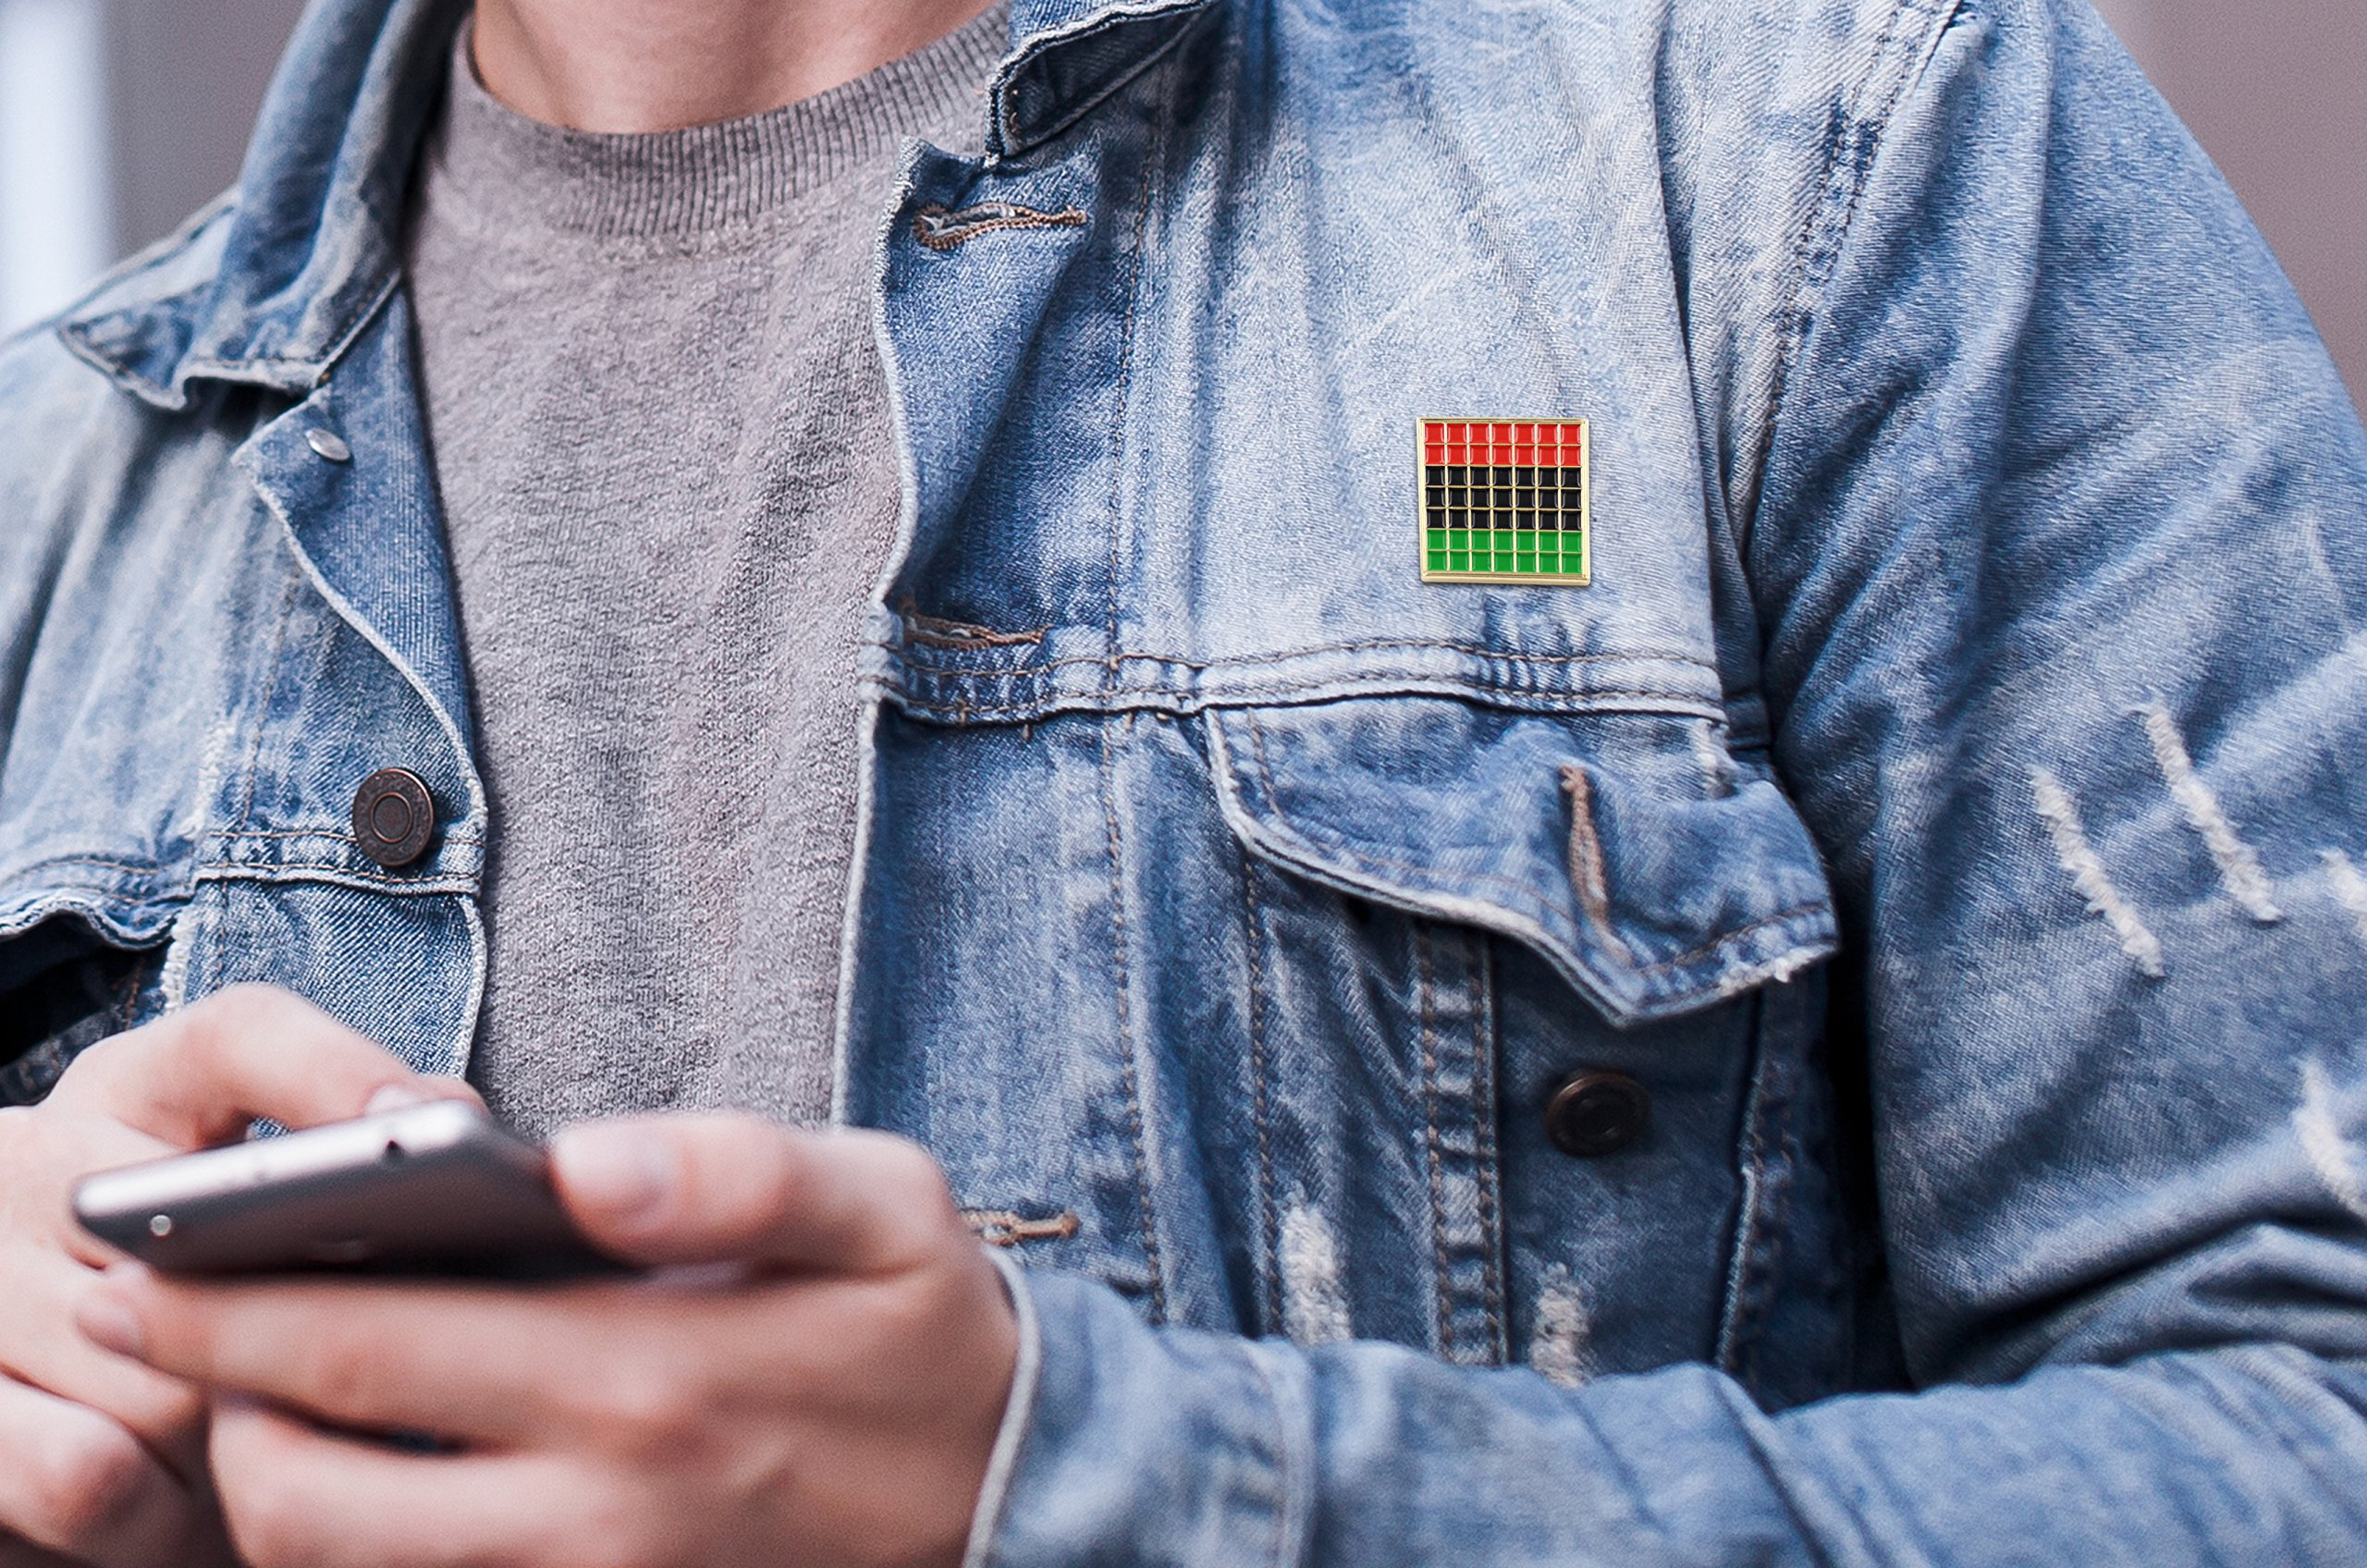 Pan African Pride Flag Enamel Pin - Black Lives Matter Lapel Pin Collection by Real Sic - Premium Grid Pins Series by Real Sic (Image #3)